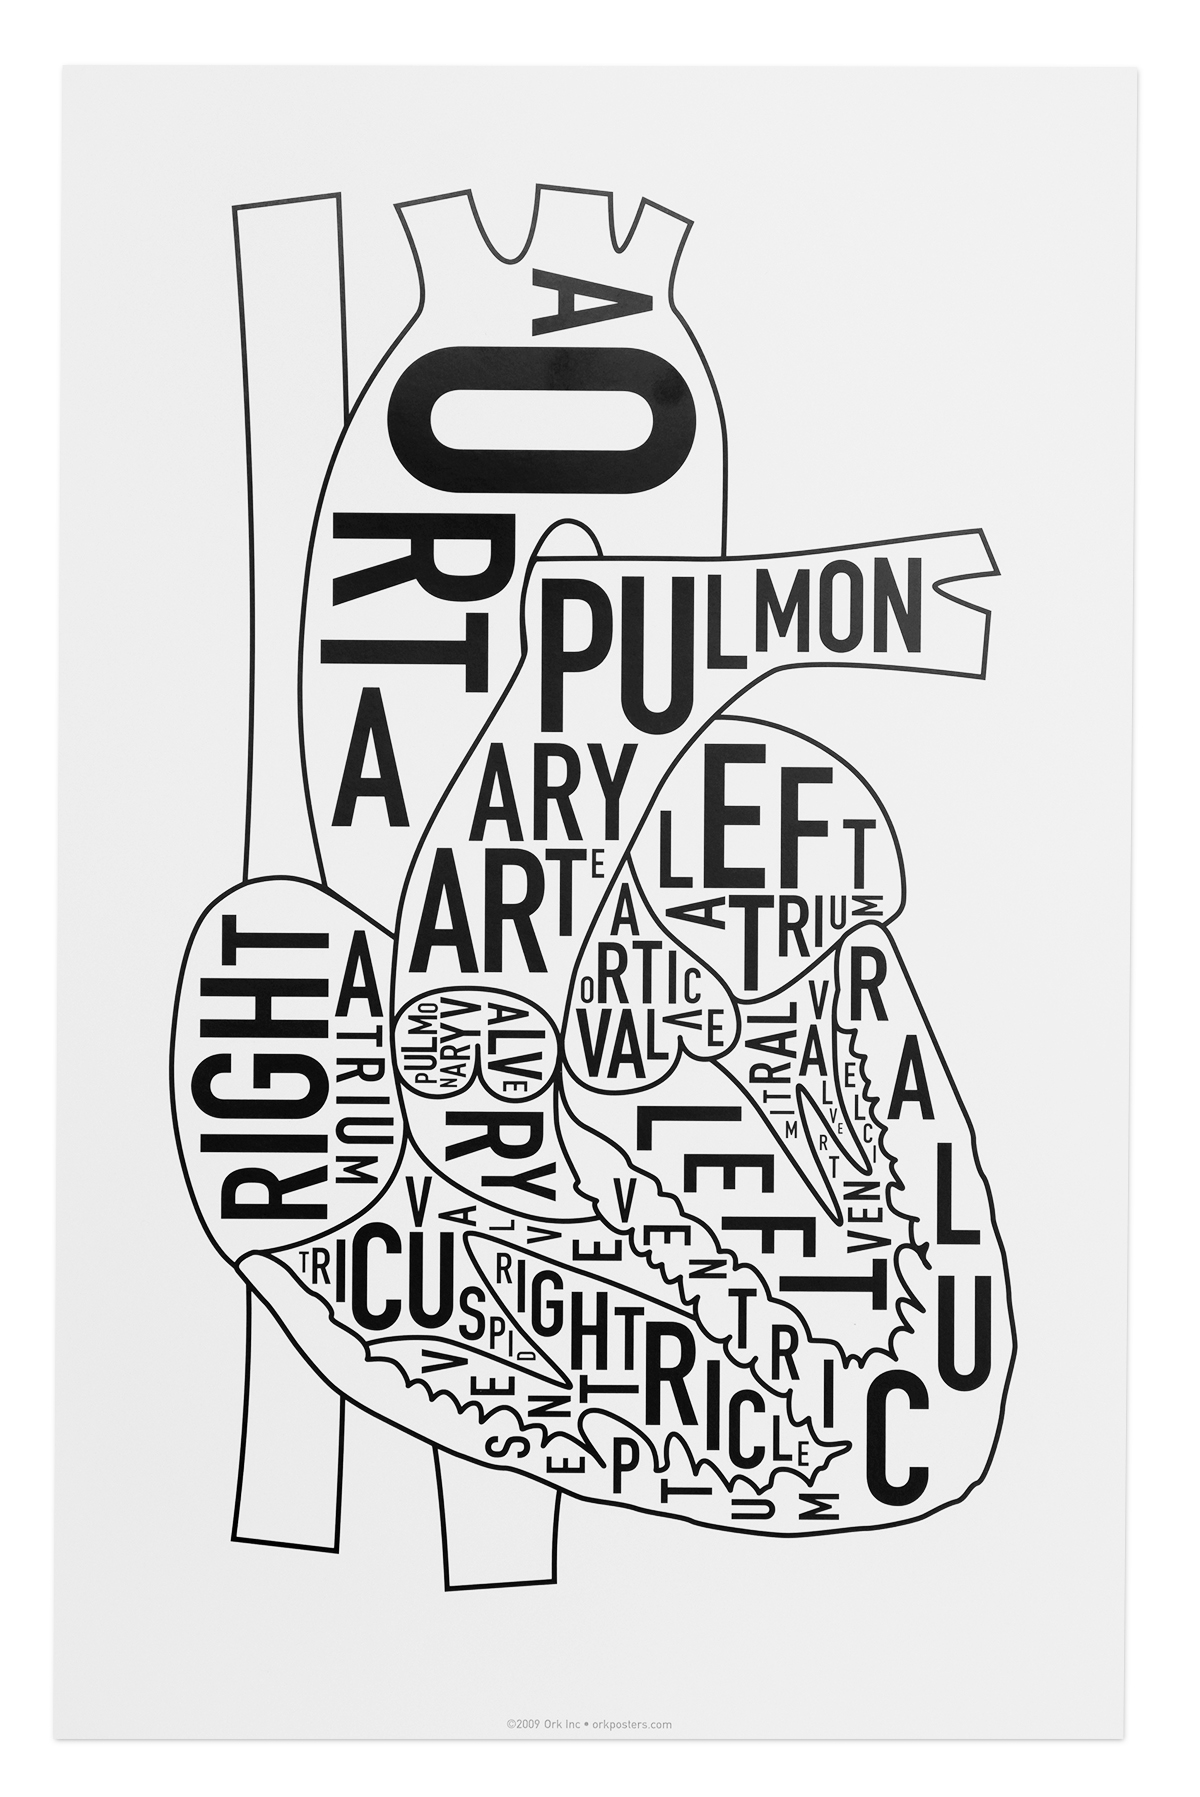 Heart Anatomy Typographic Art Prints Human Design By Ork Posters Diagram And On Pinterest